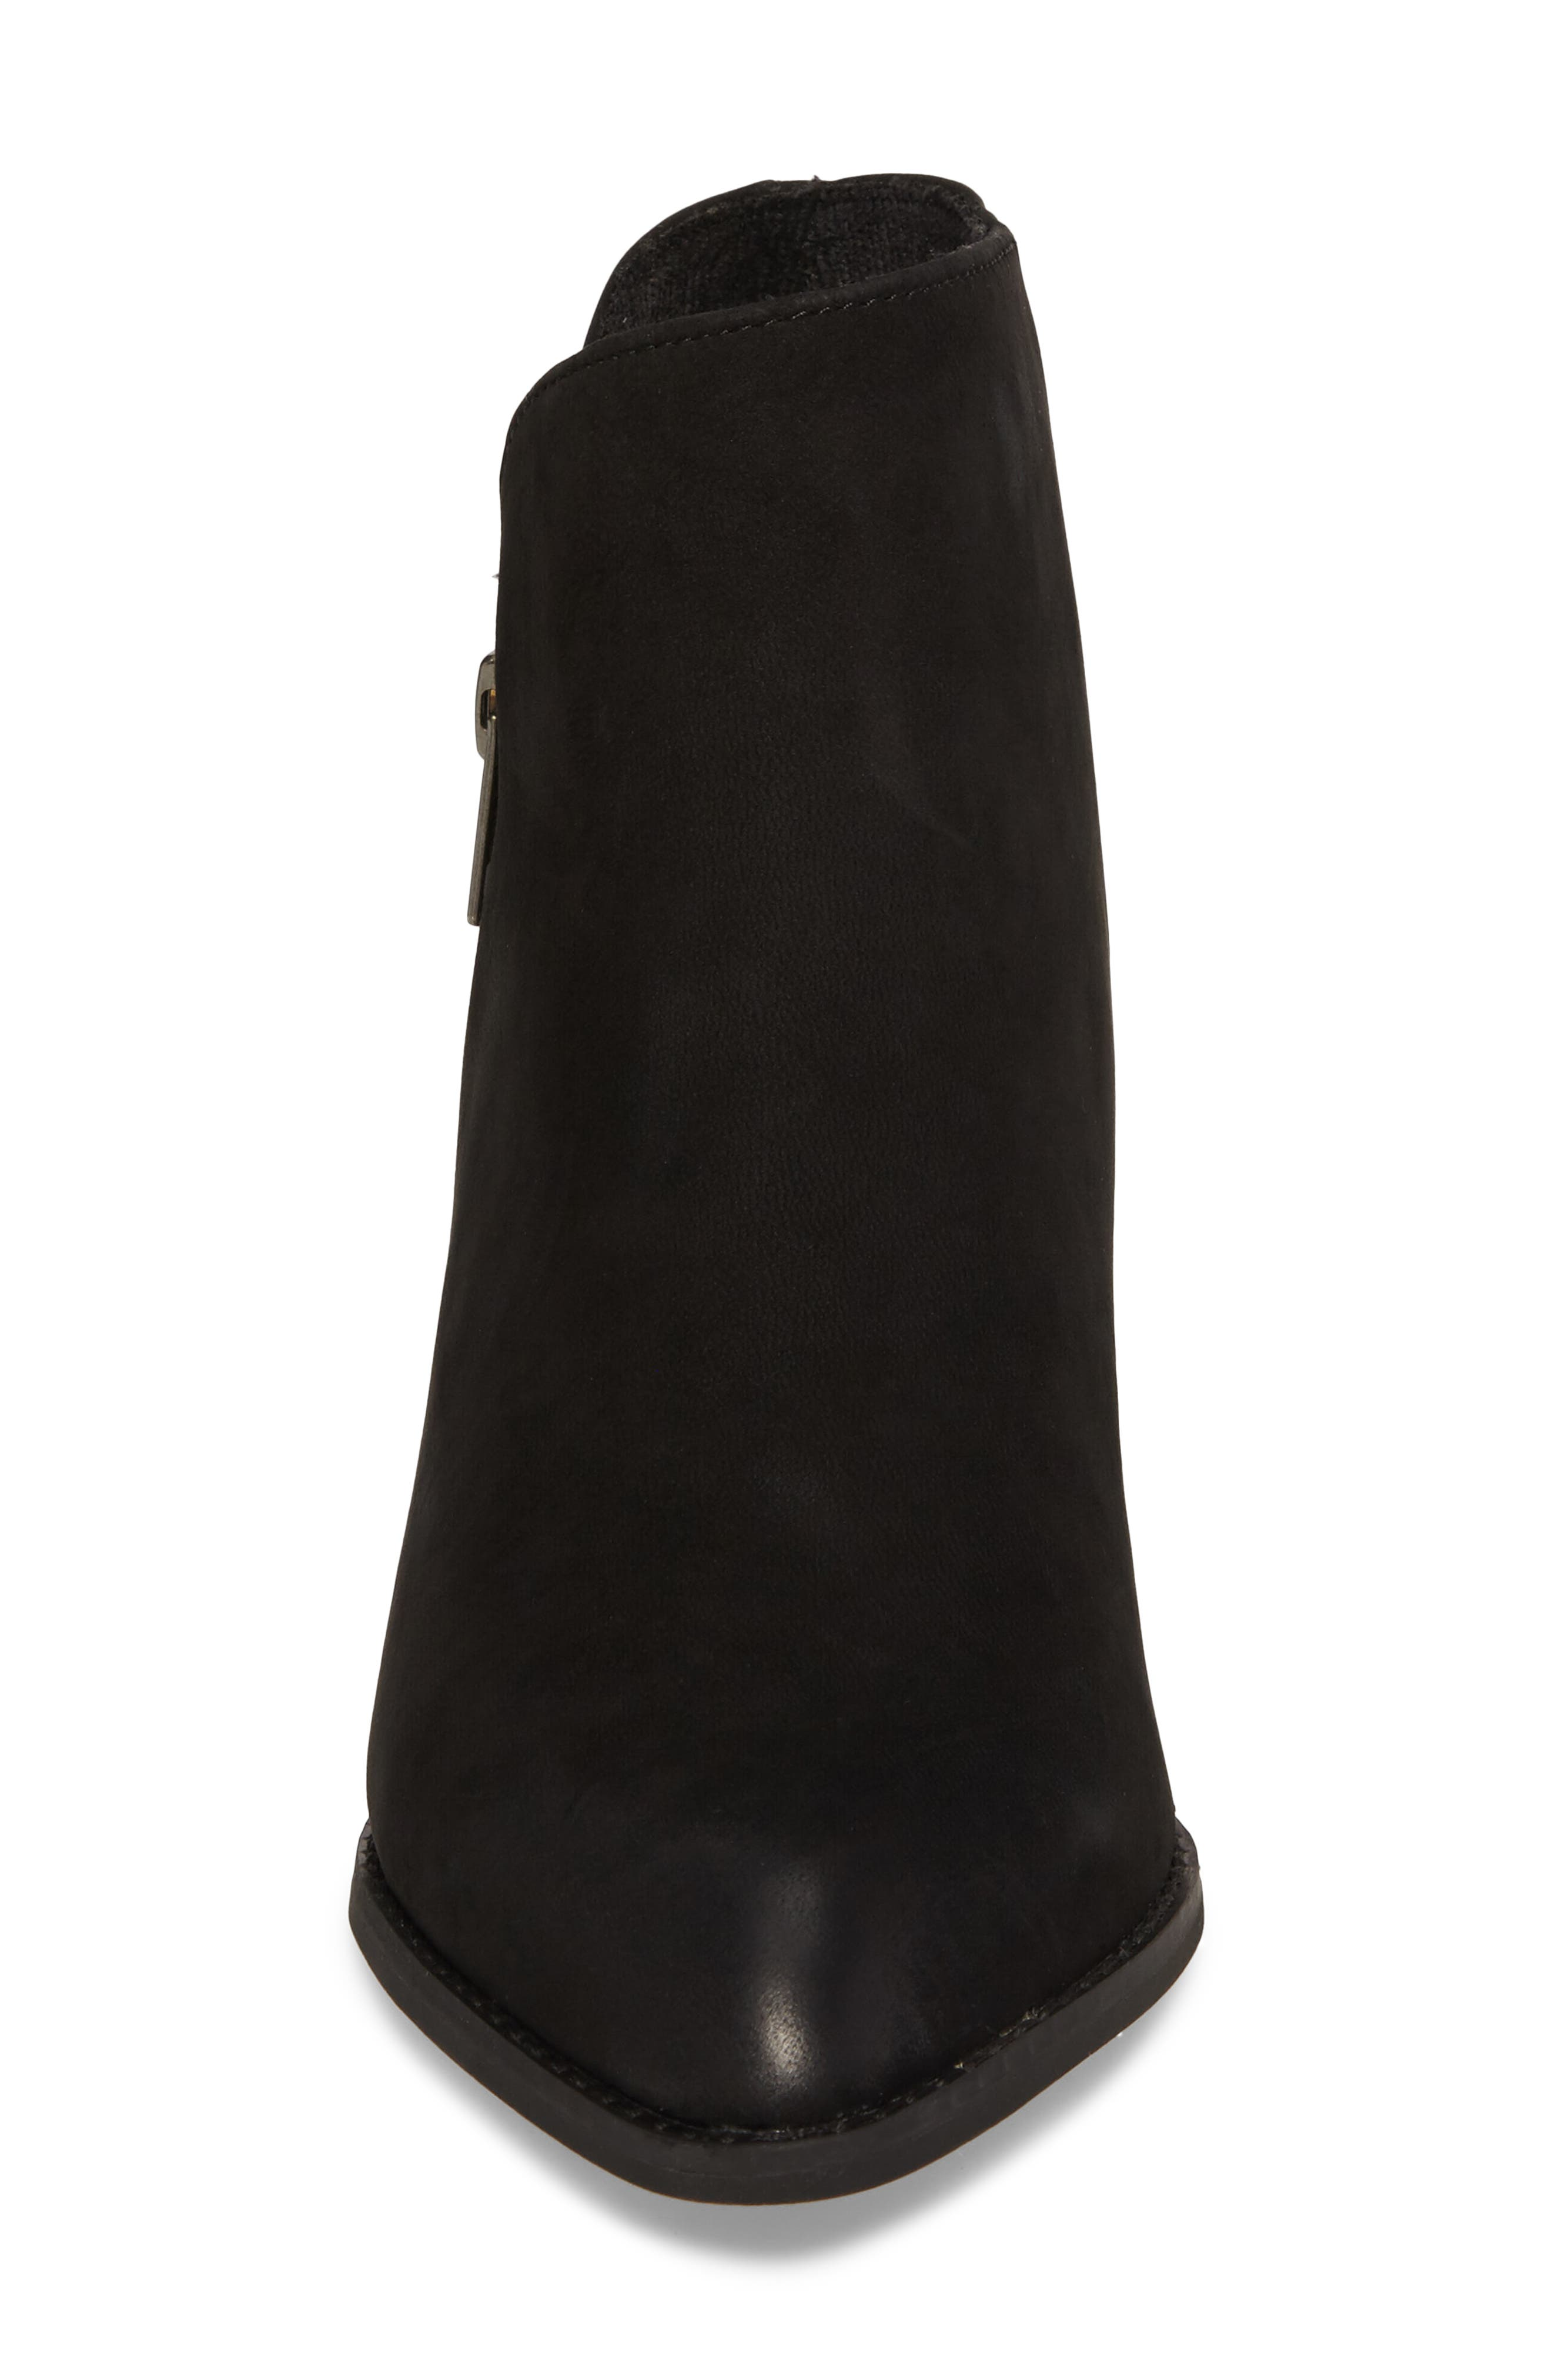 Chaparral Bootie,                             Alternate thumbnail 4, color,                             Black Leather